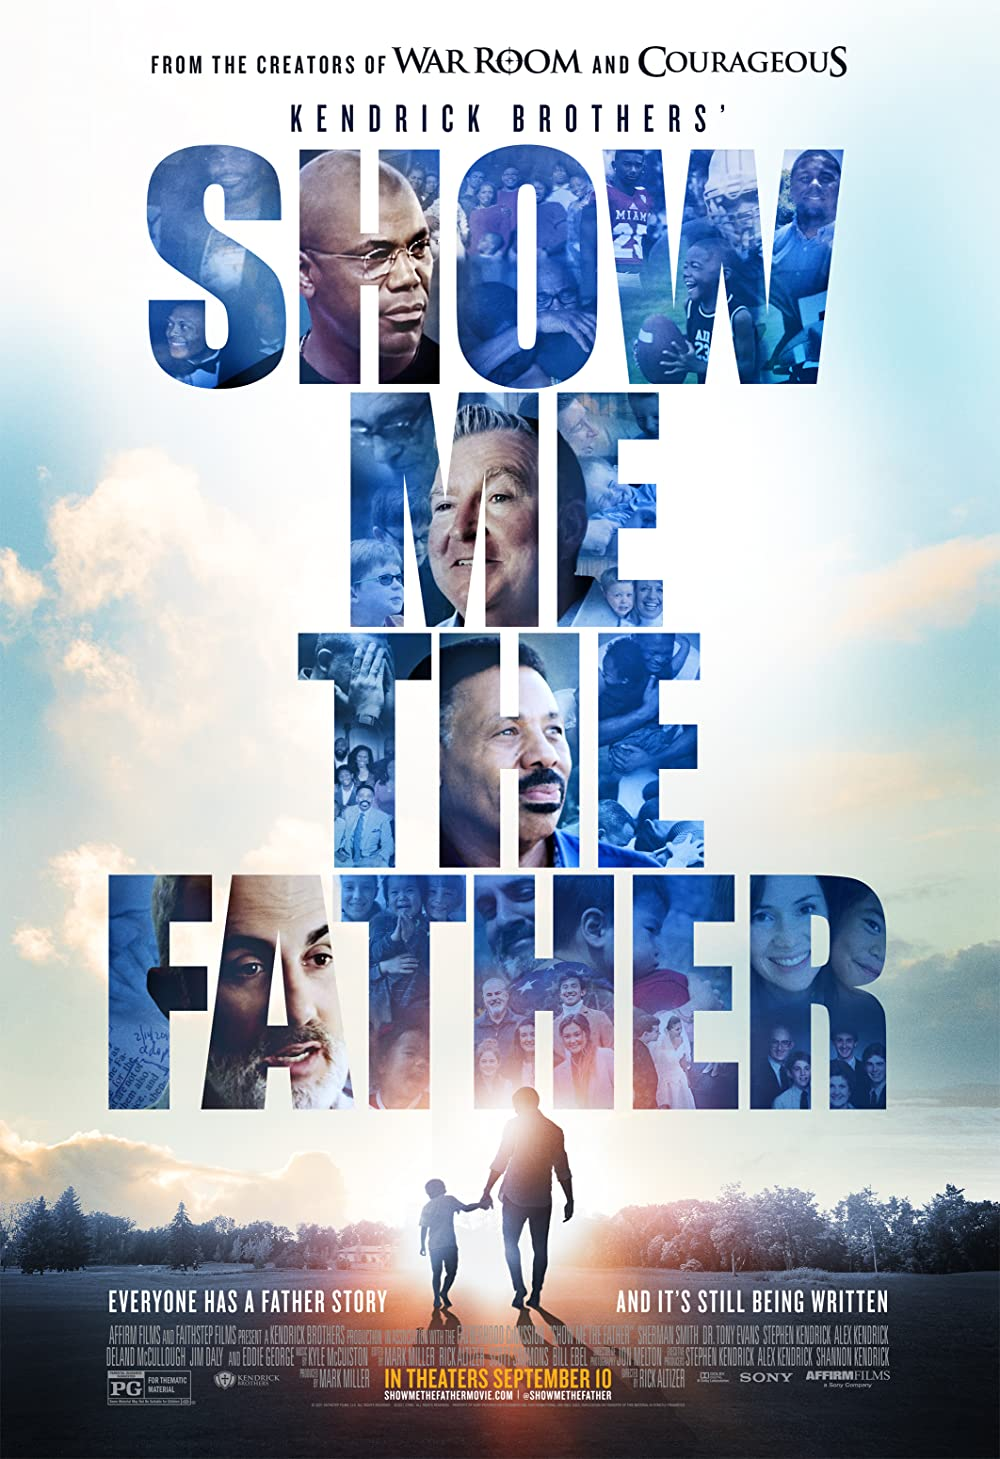 Faith-Based Film Show Me the Father' Earns Rare A+ CinemaScore, Opens in Top 10